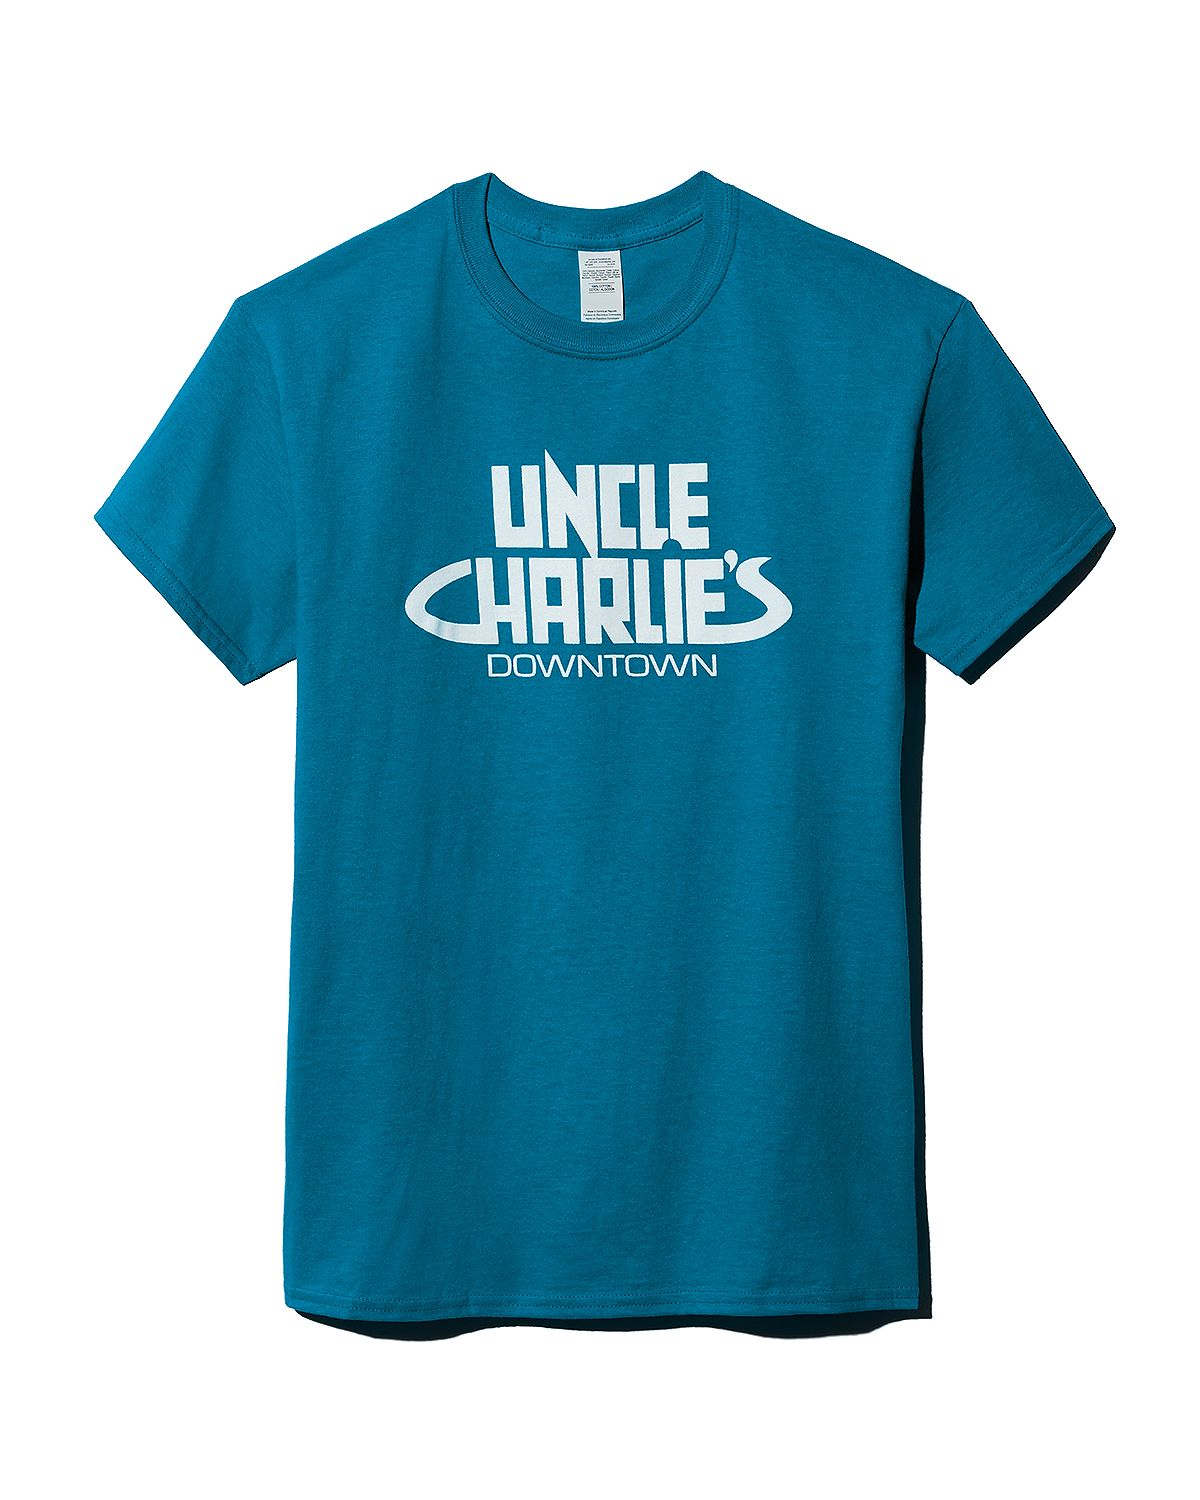 Opening Ceremony X  Uncle Charlie's Graphic Tee